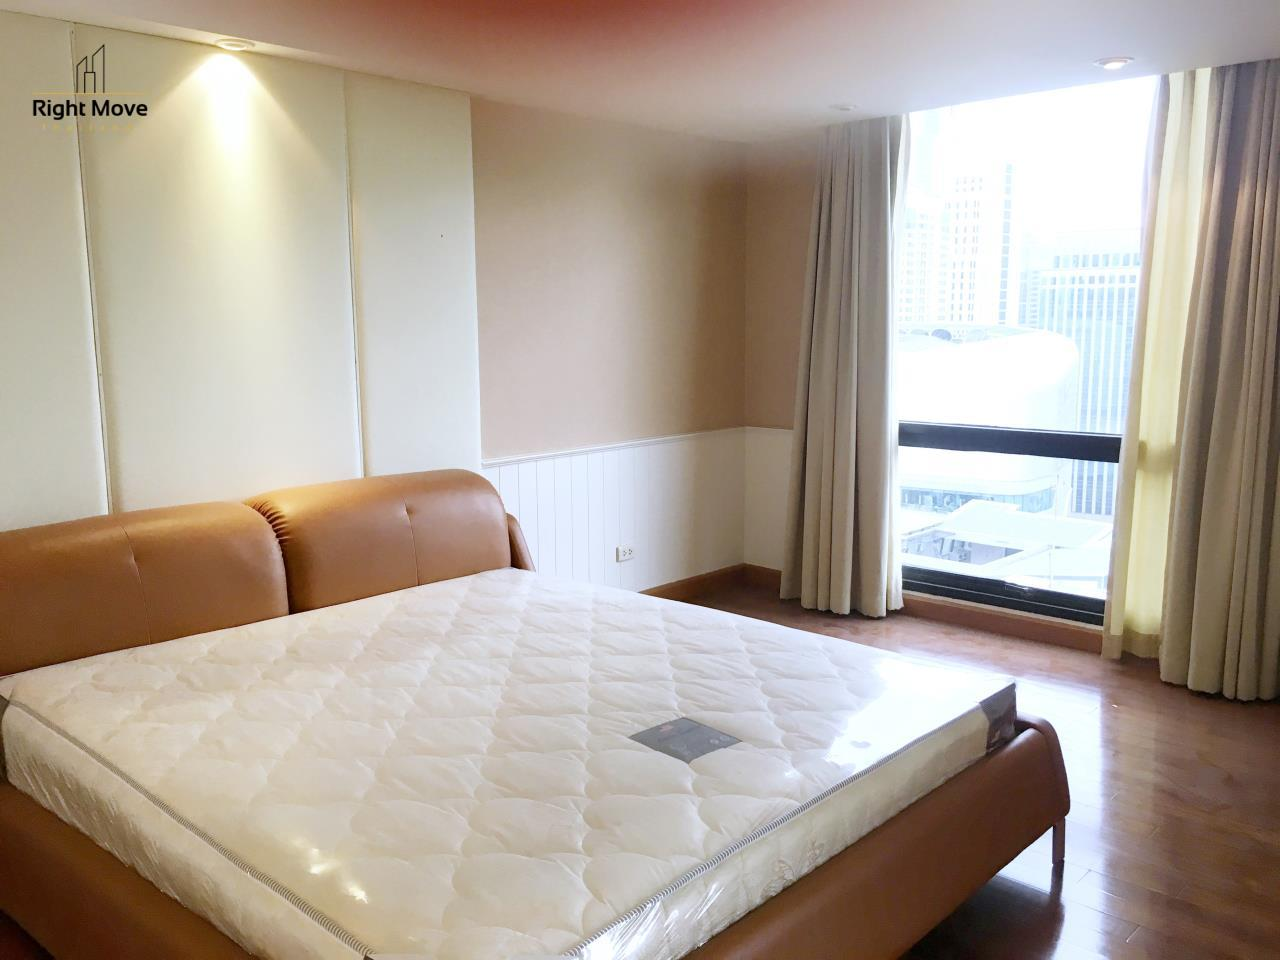 Right Move Thailand Agency's CA5243 Somkid Gardens For Rent 120,000 THB 4 Bedrooms 250 Sqm 6